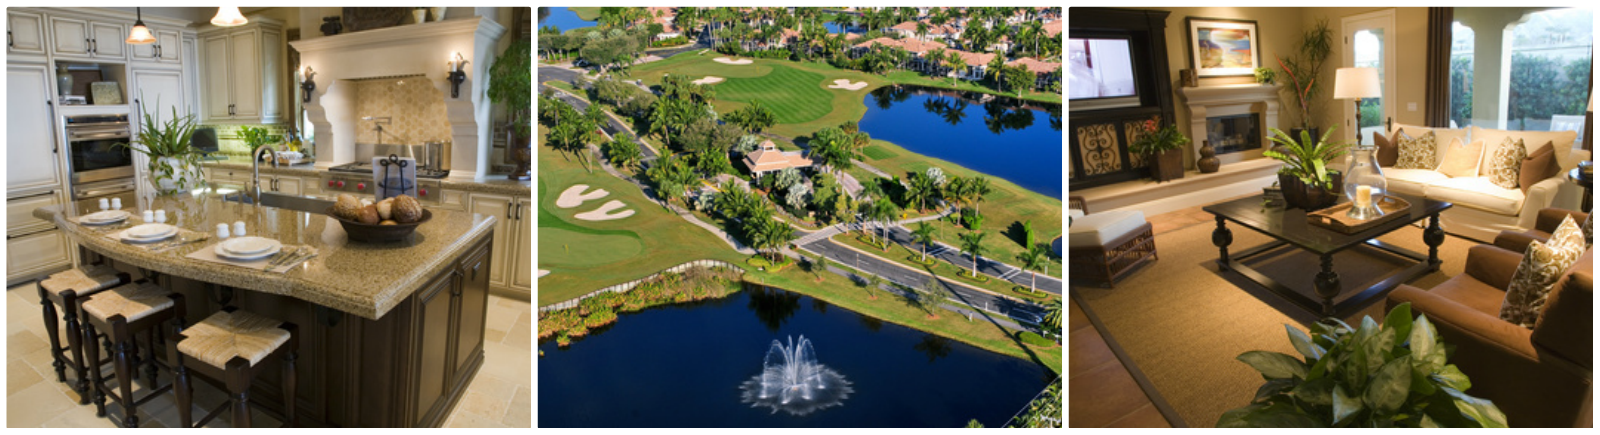 Stupendous Broward County Luxury Homes For Sale In South Florida Home Interior And Landscaping Ologienasavecom